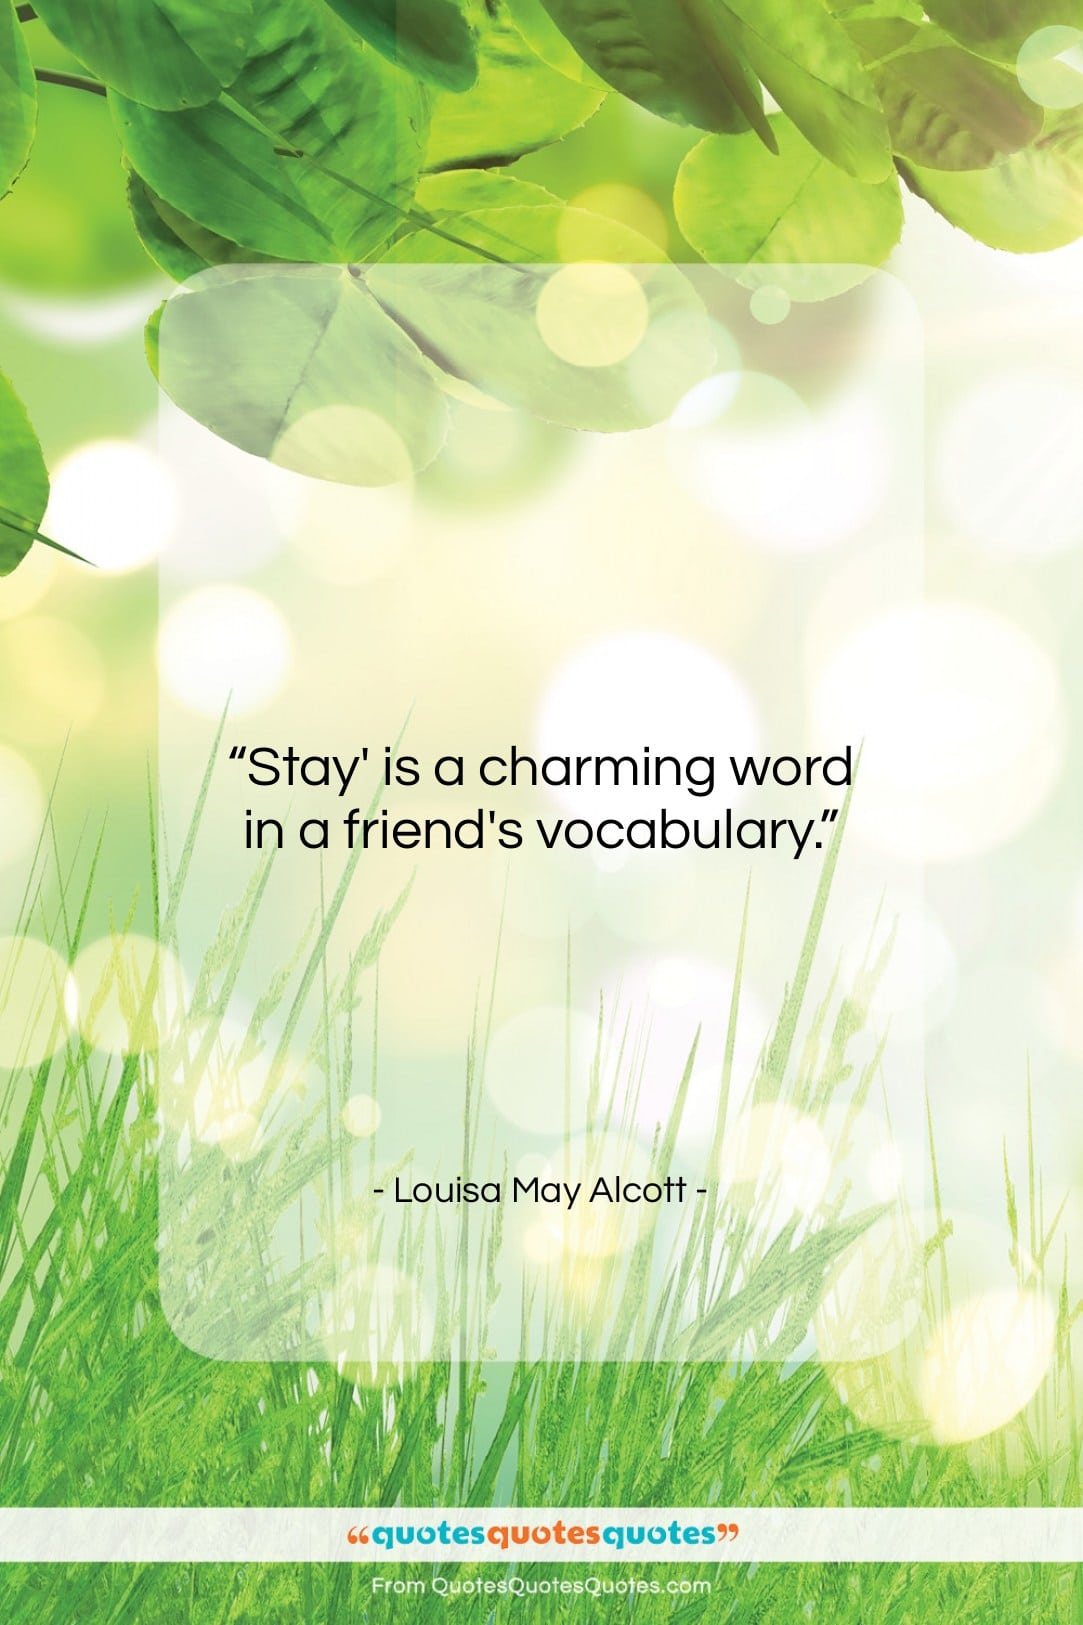 """Louisa May Alcott quote: """"Stay' is a charming word in a…""""- at QuotesQuotesQuotes.com"""